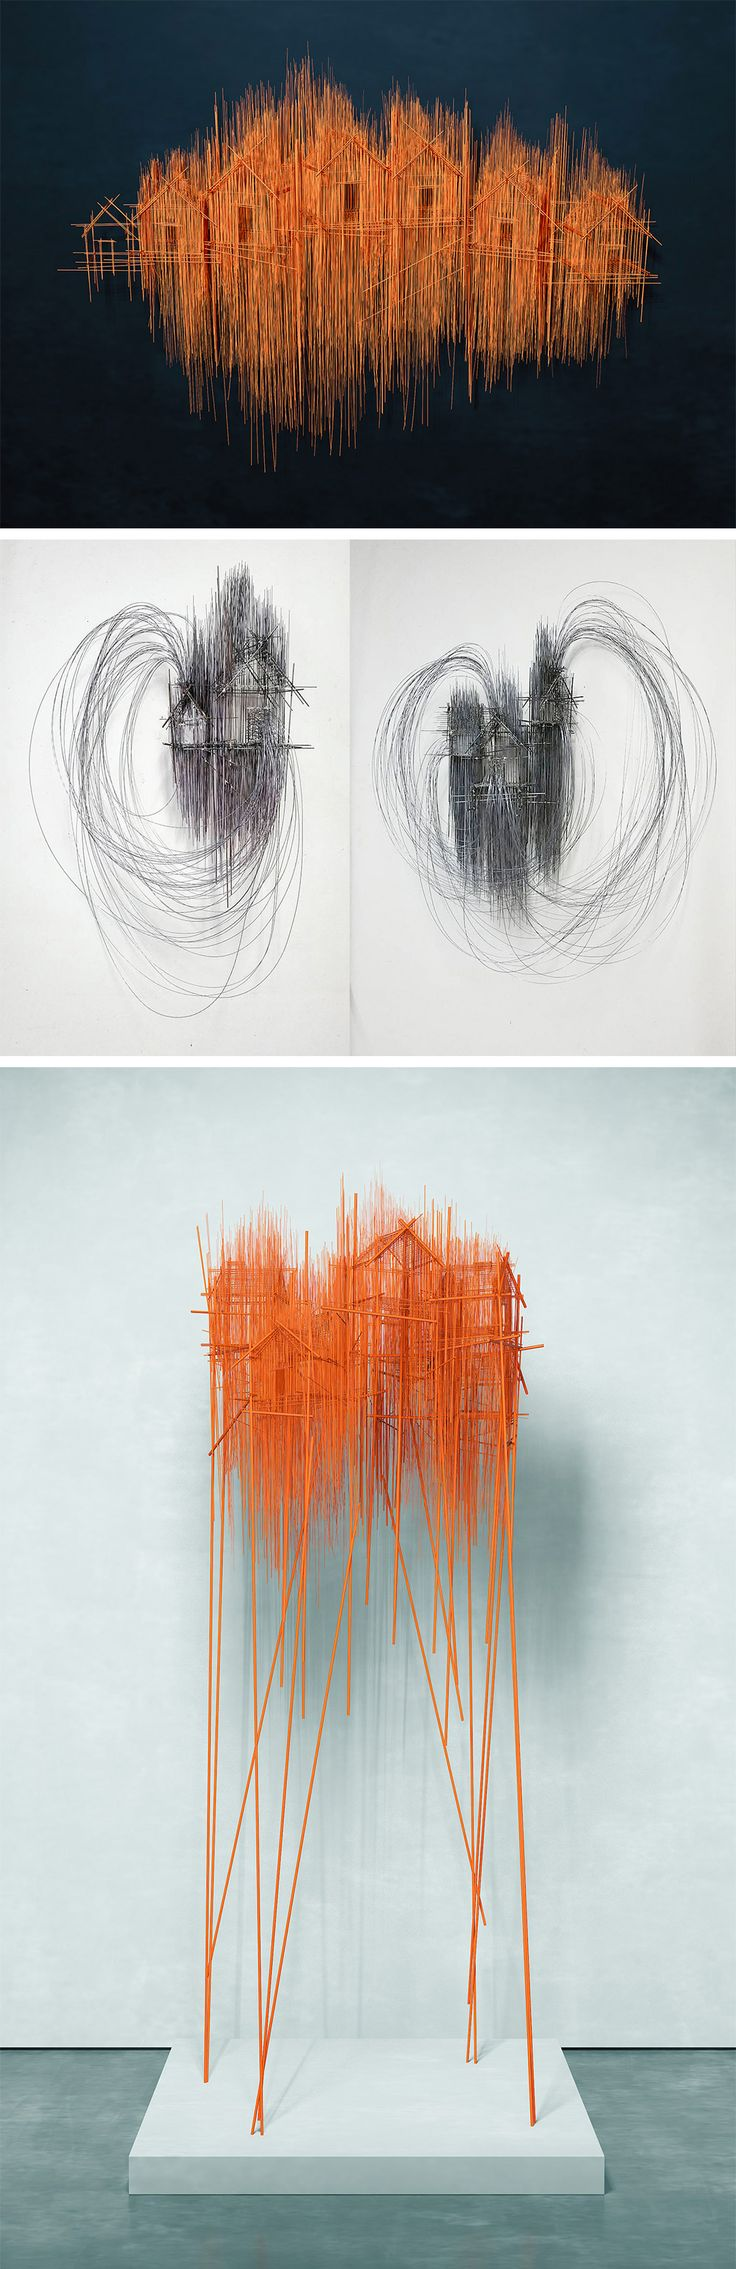 Architectural Sculptures by David Moreno Look Like Wild Pencil Sketches